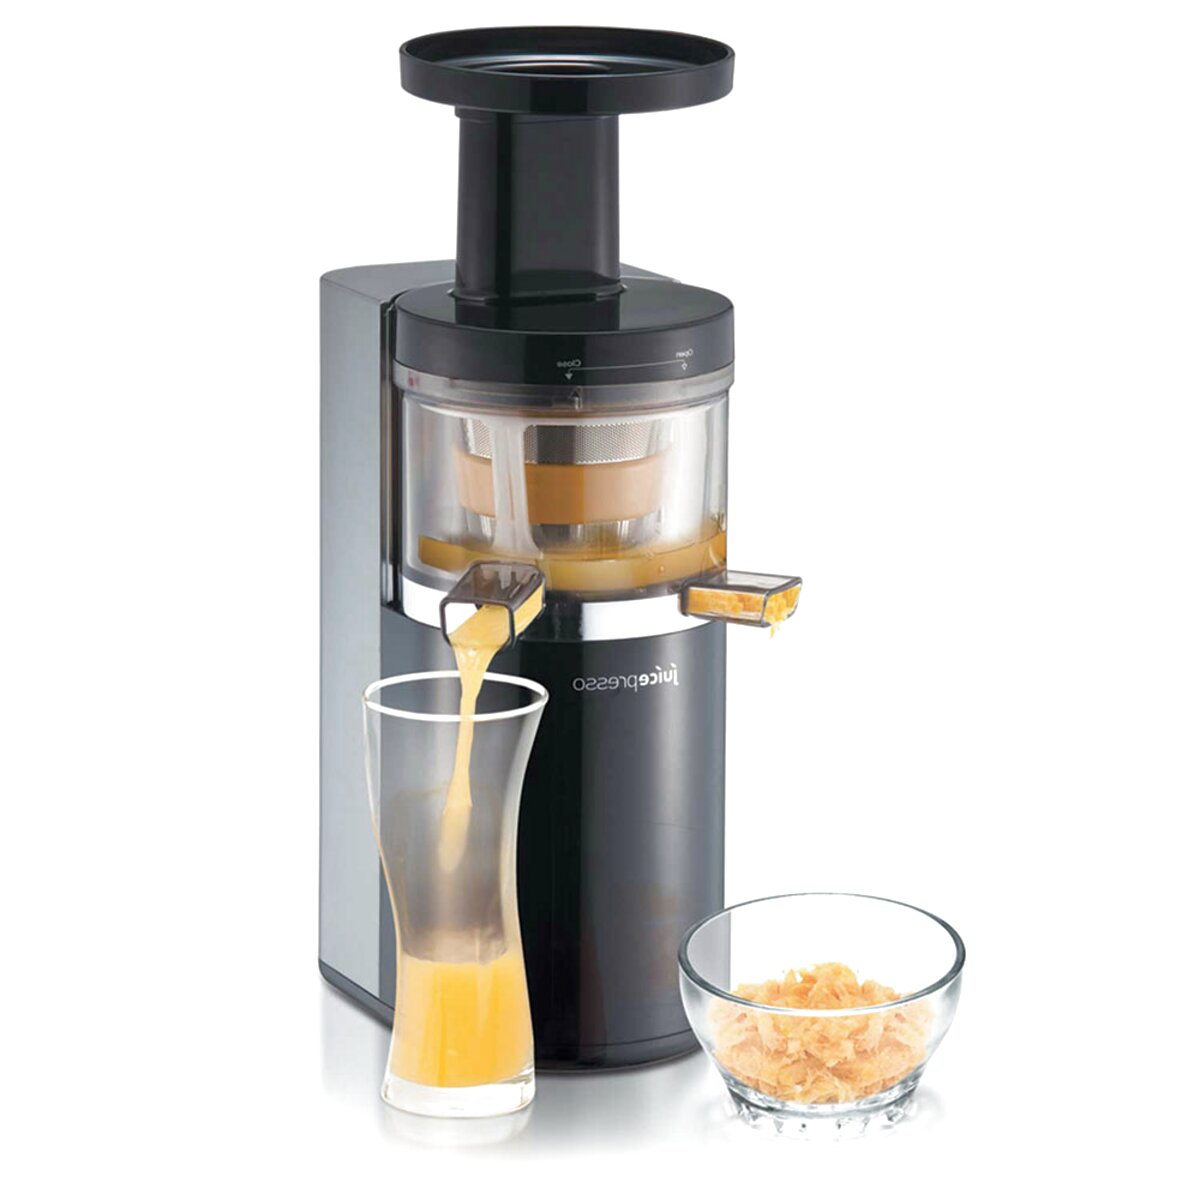 l equip juicer for sale